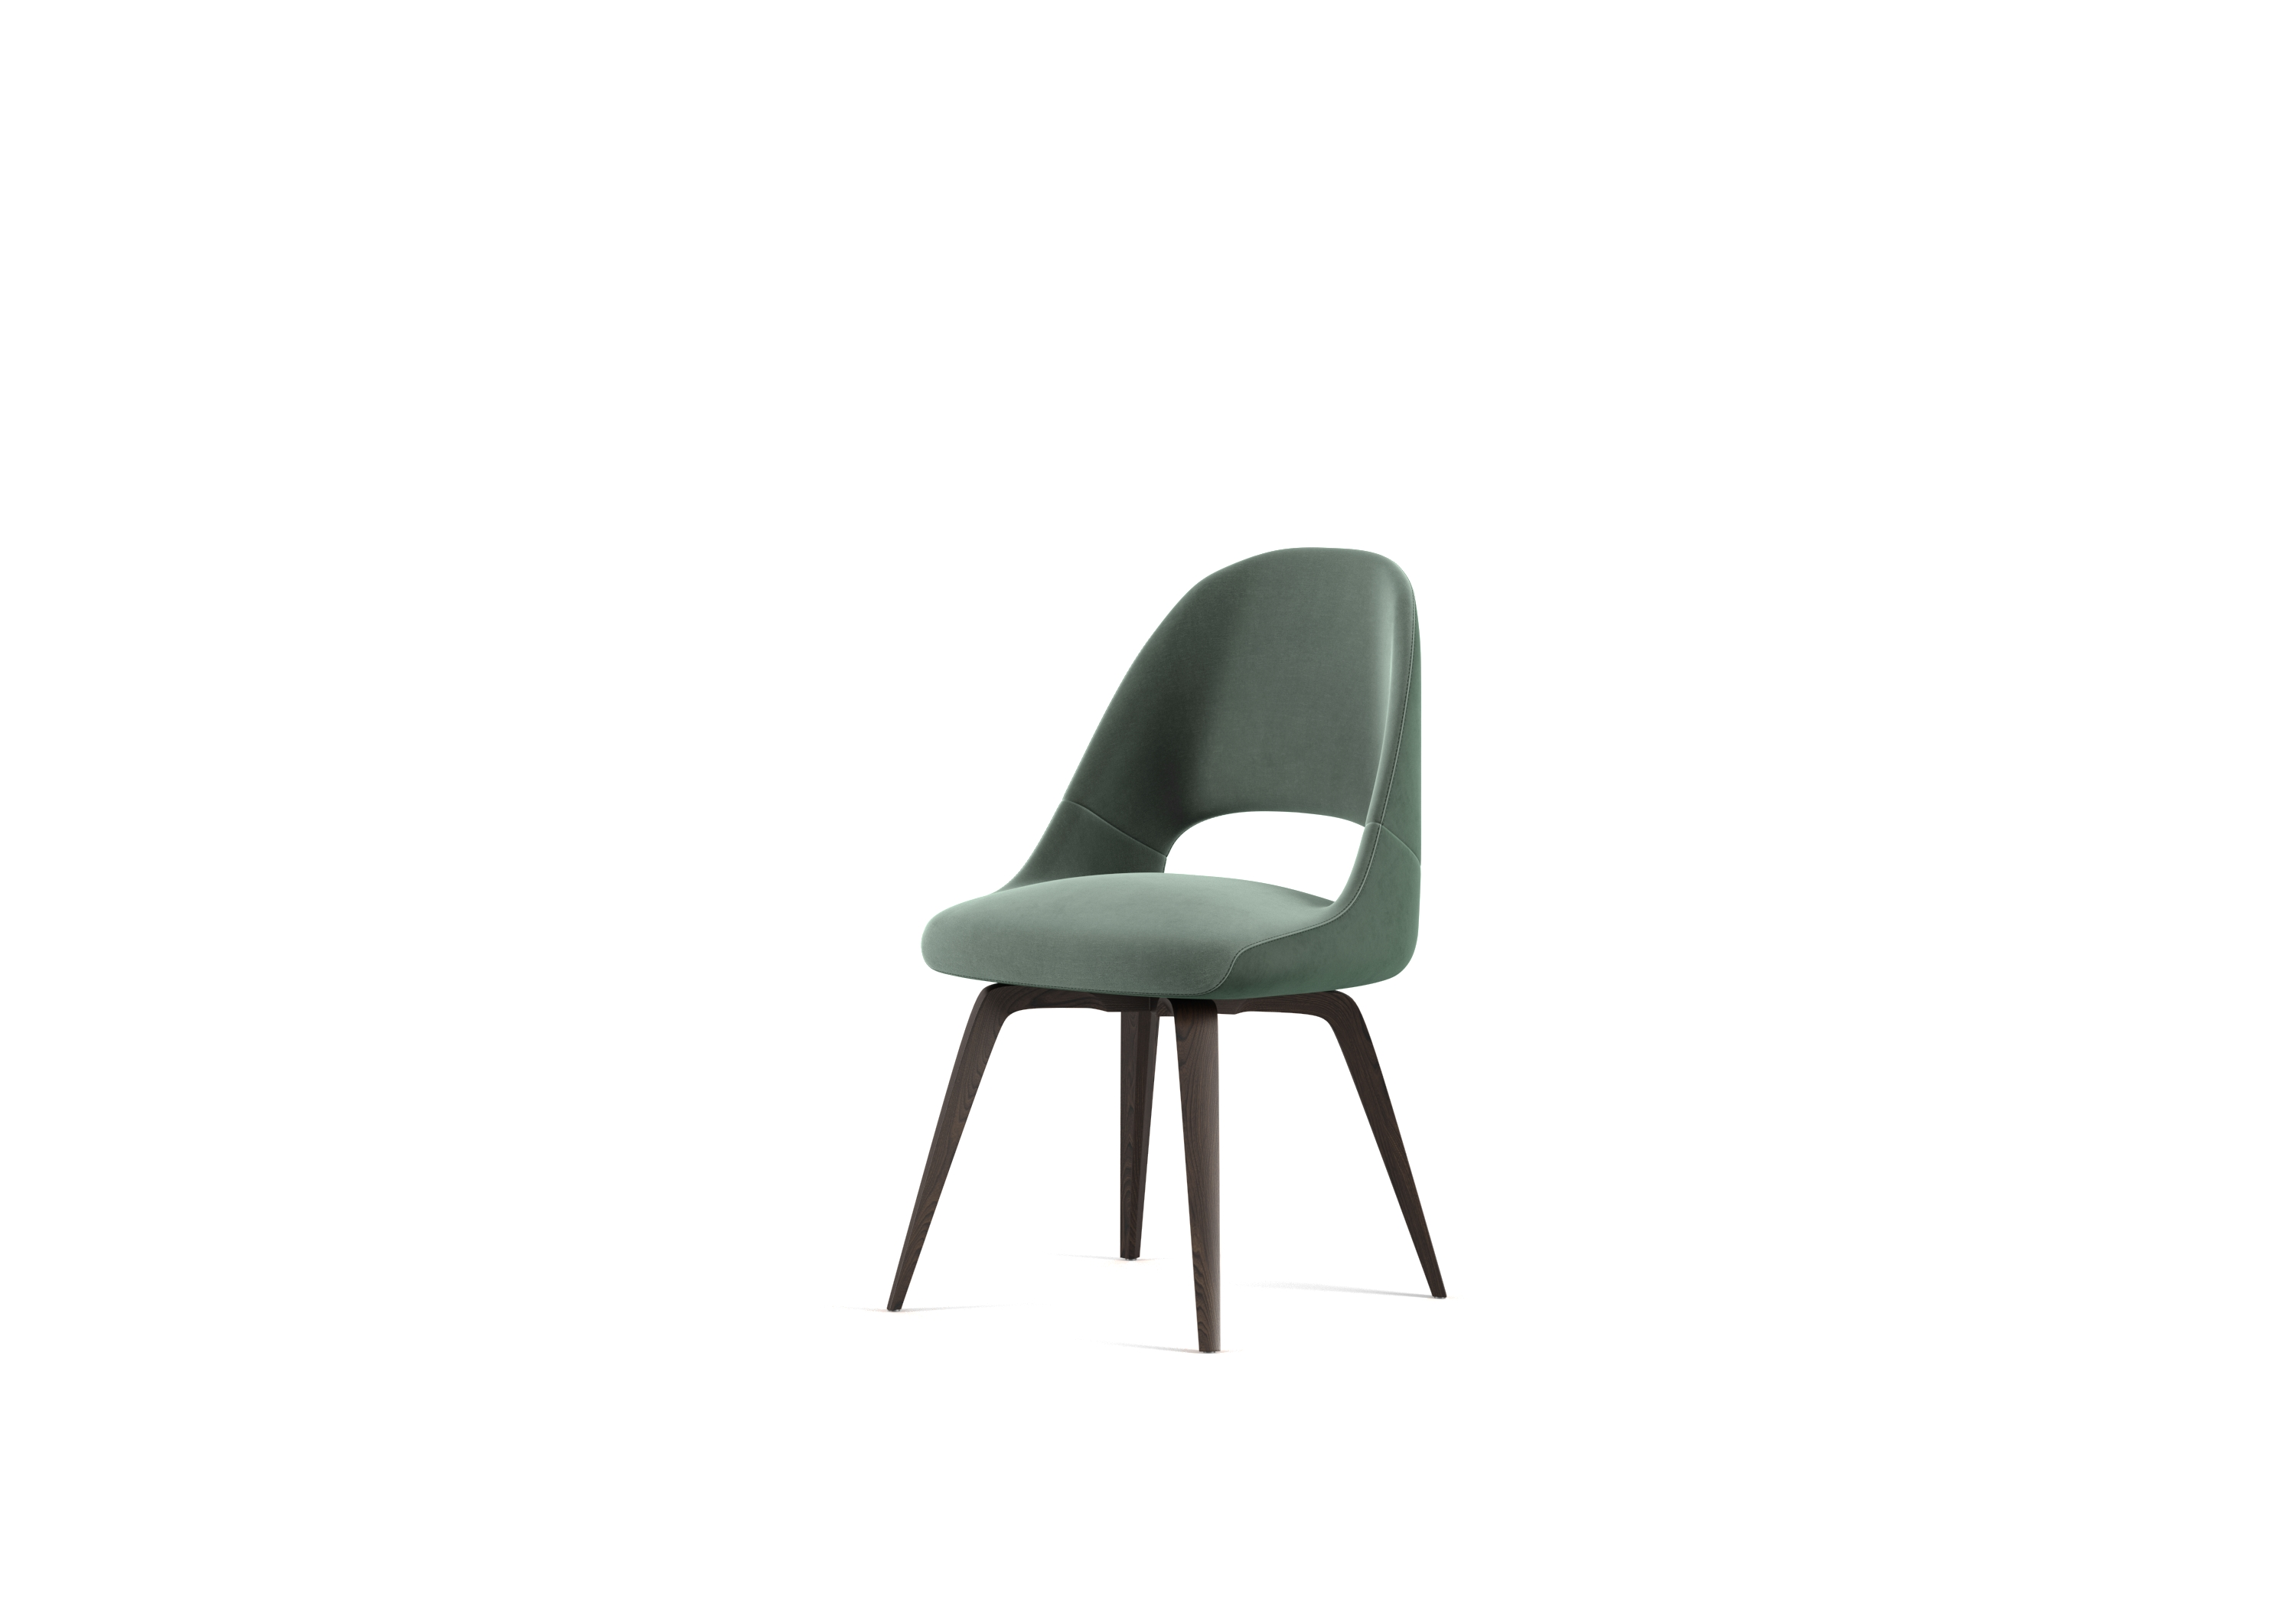 Chair without arms 01 (1) W45 x L54 x H81